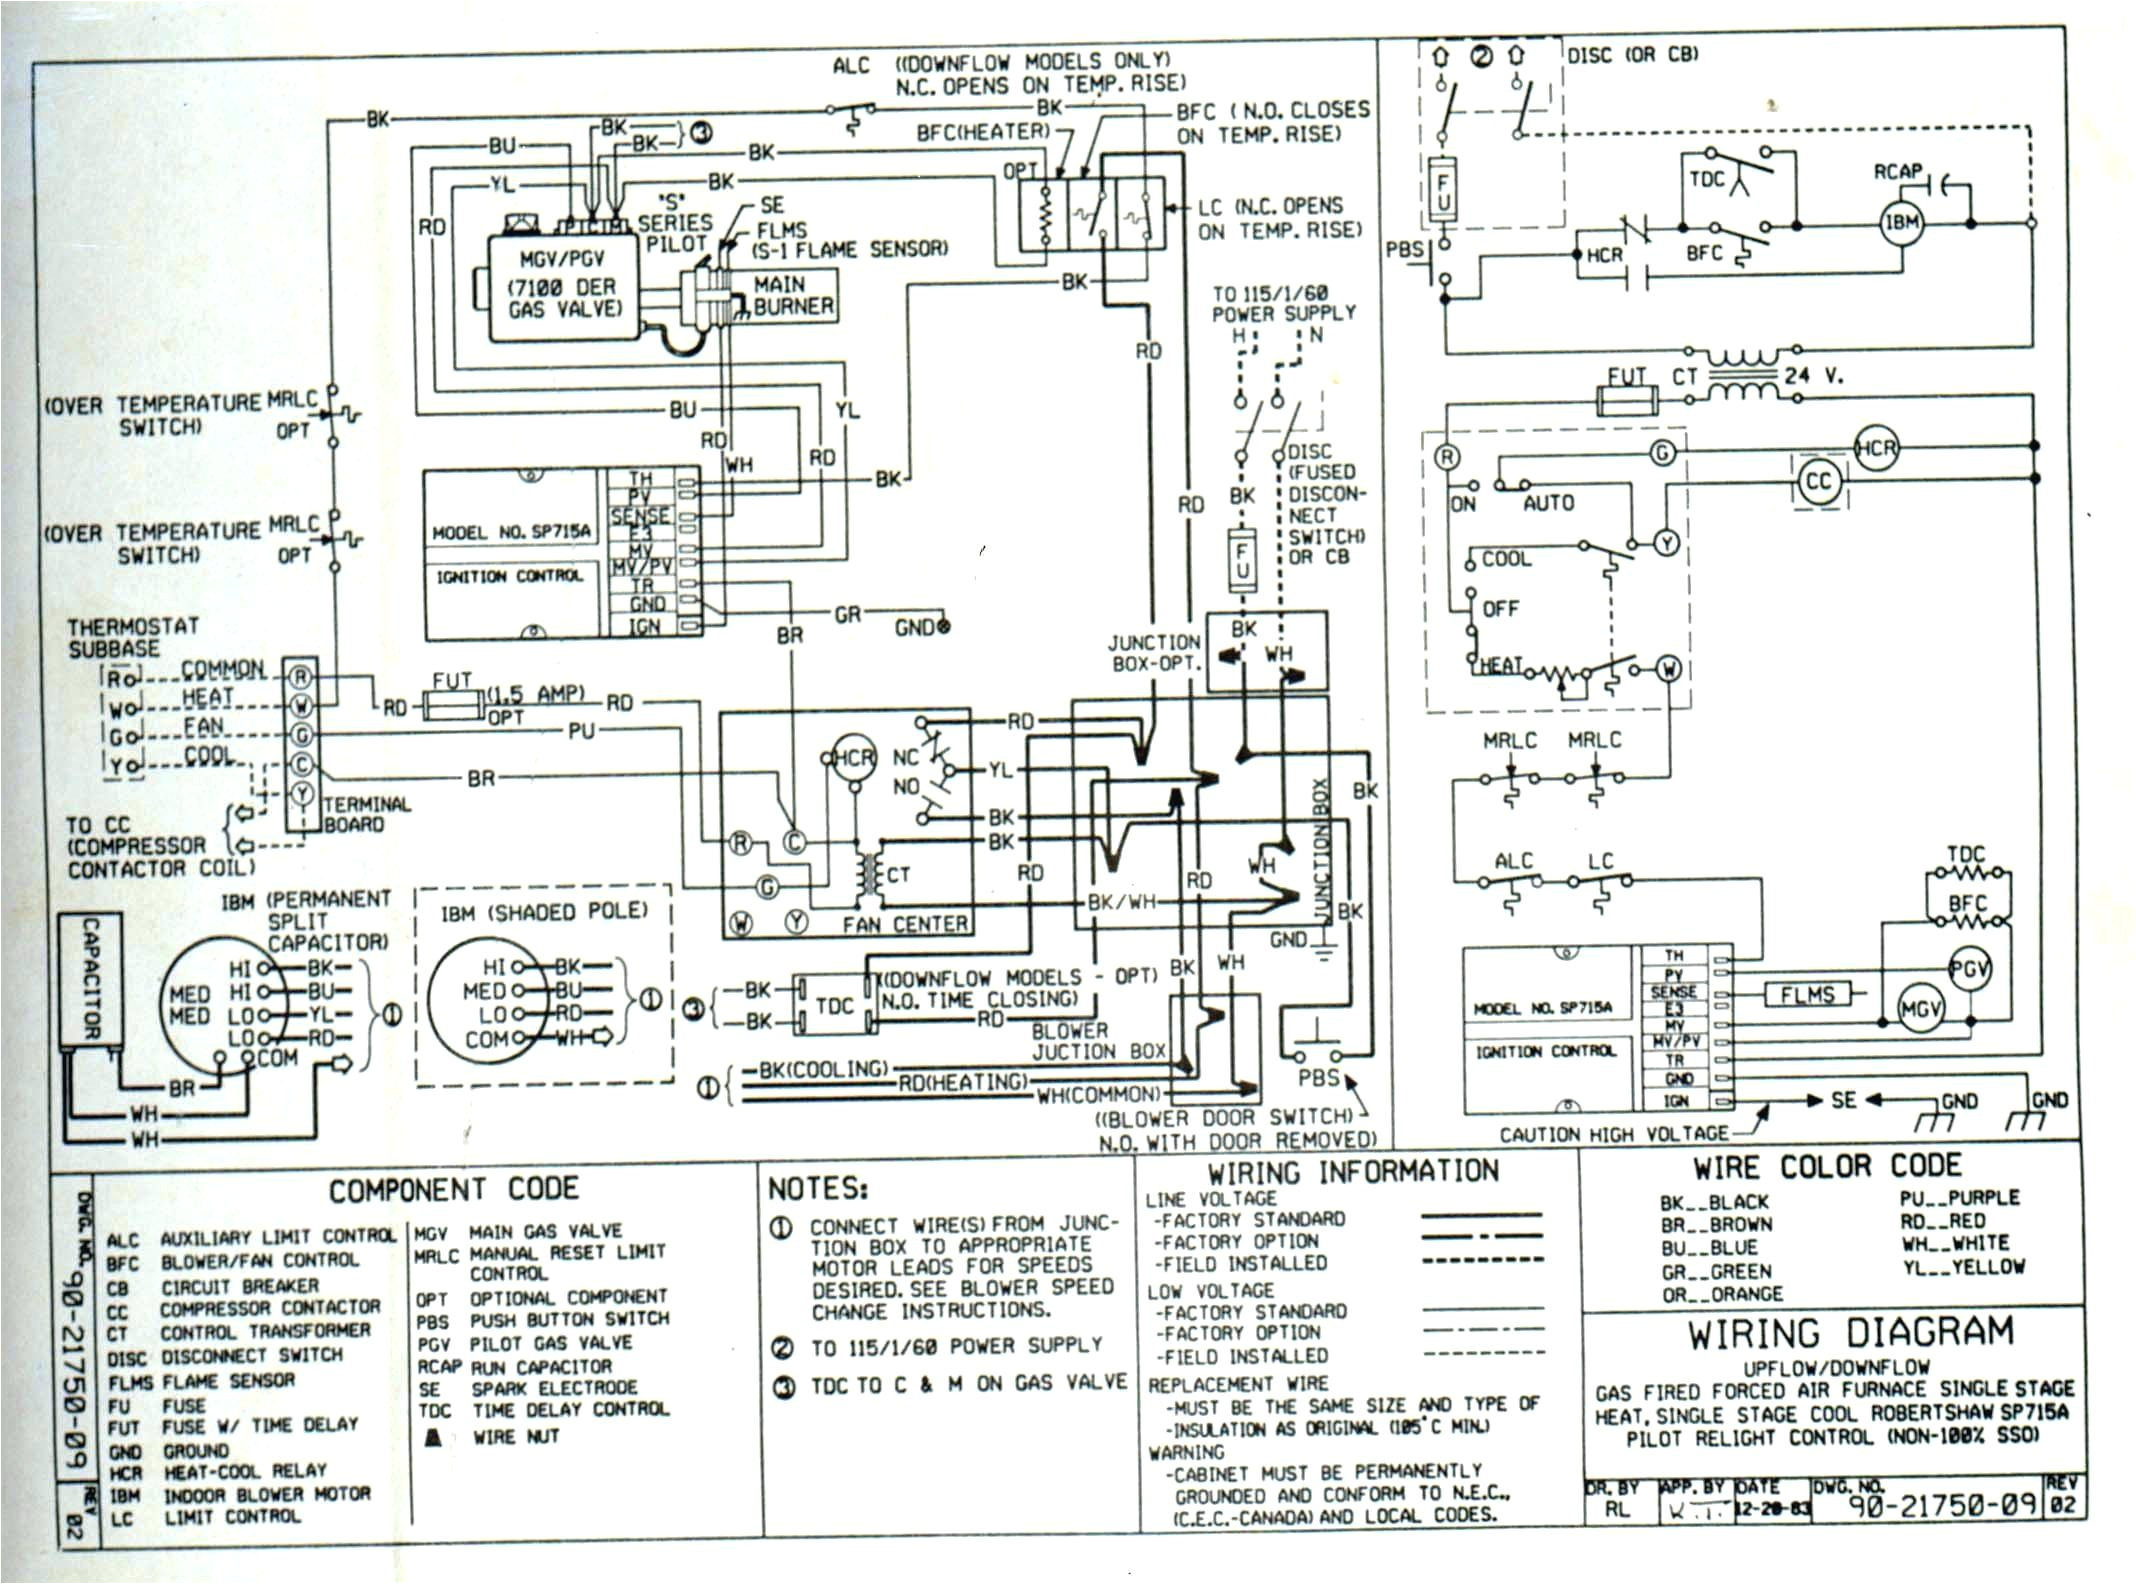 Forward Reverse Contactor Wiring Diagram Trane Xe900 Contactor Wiring Wiring Diagram All